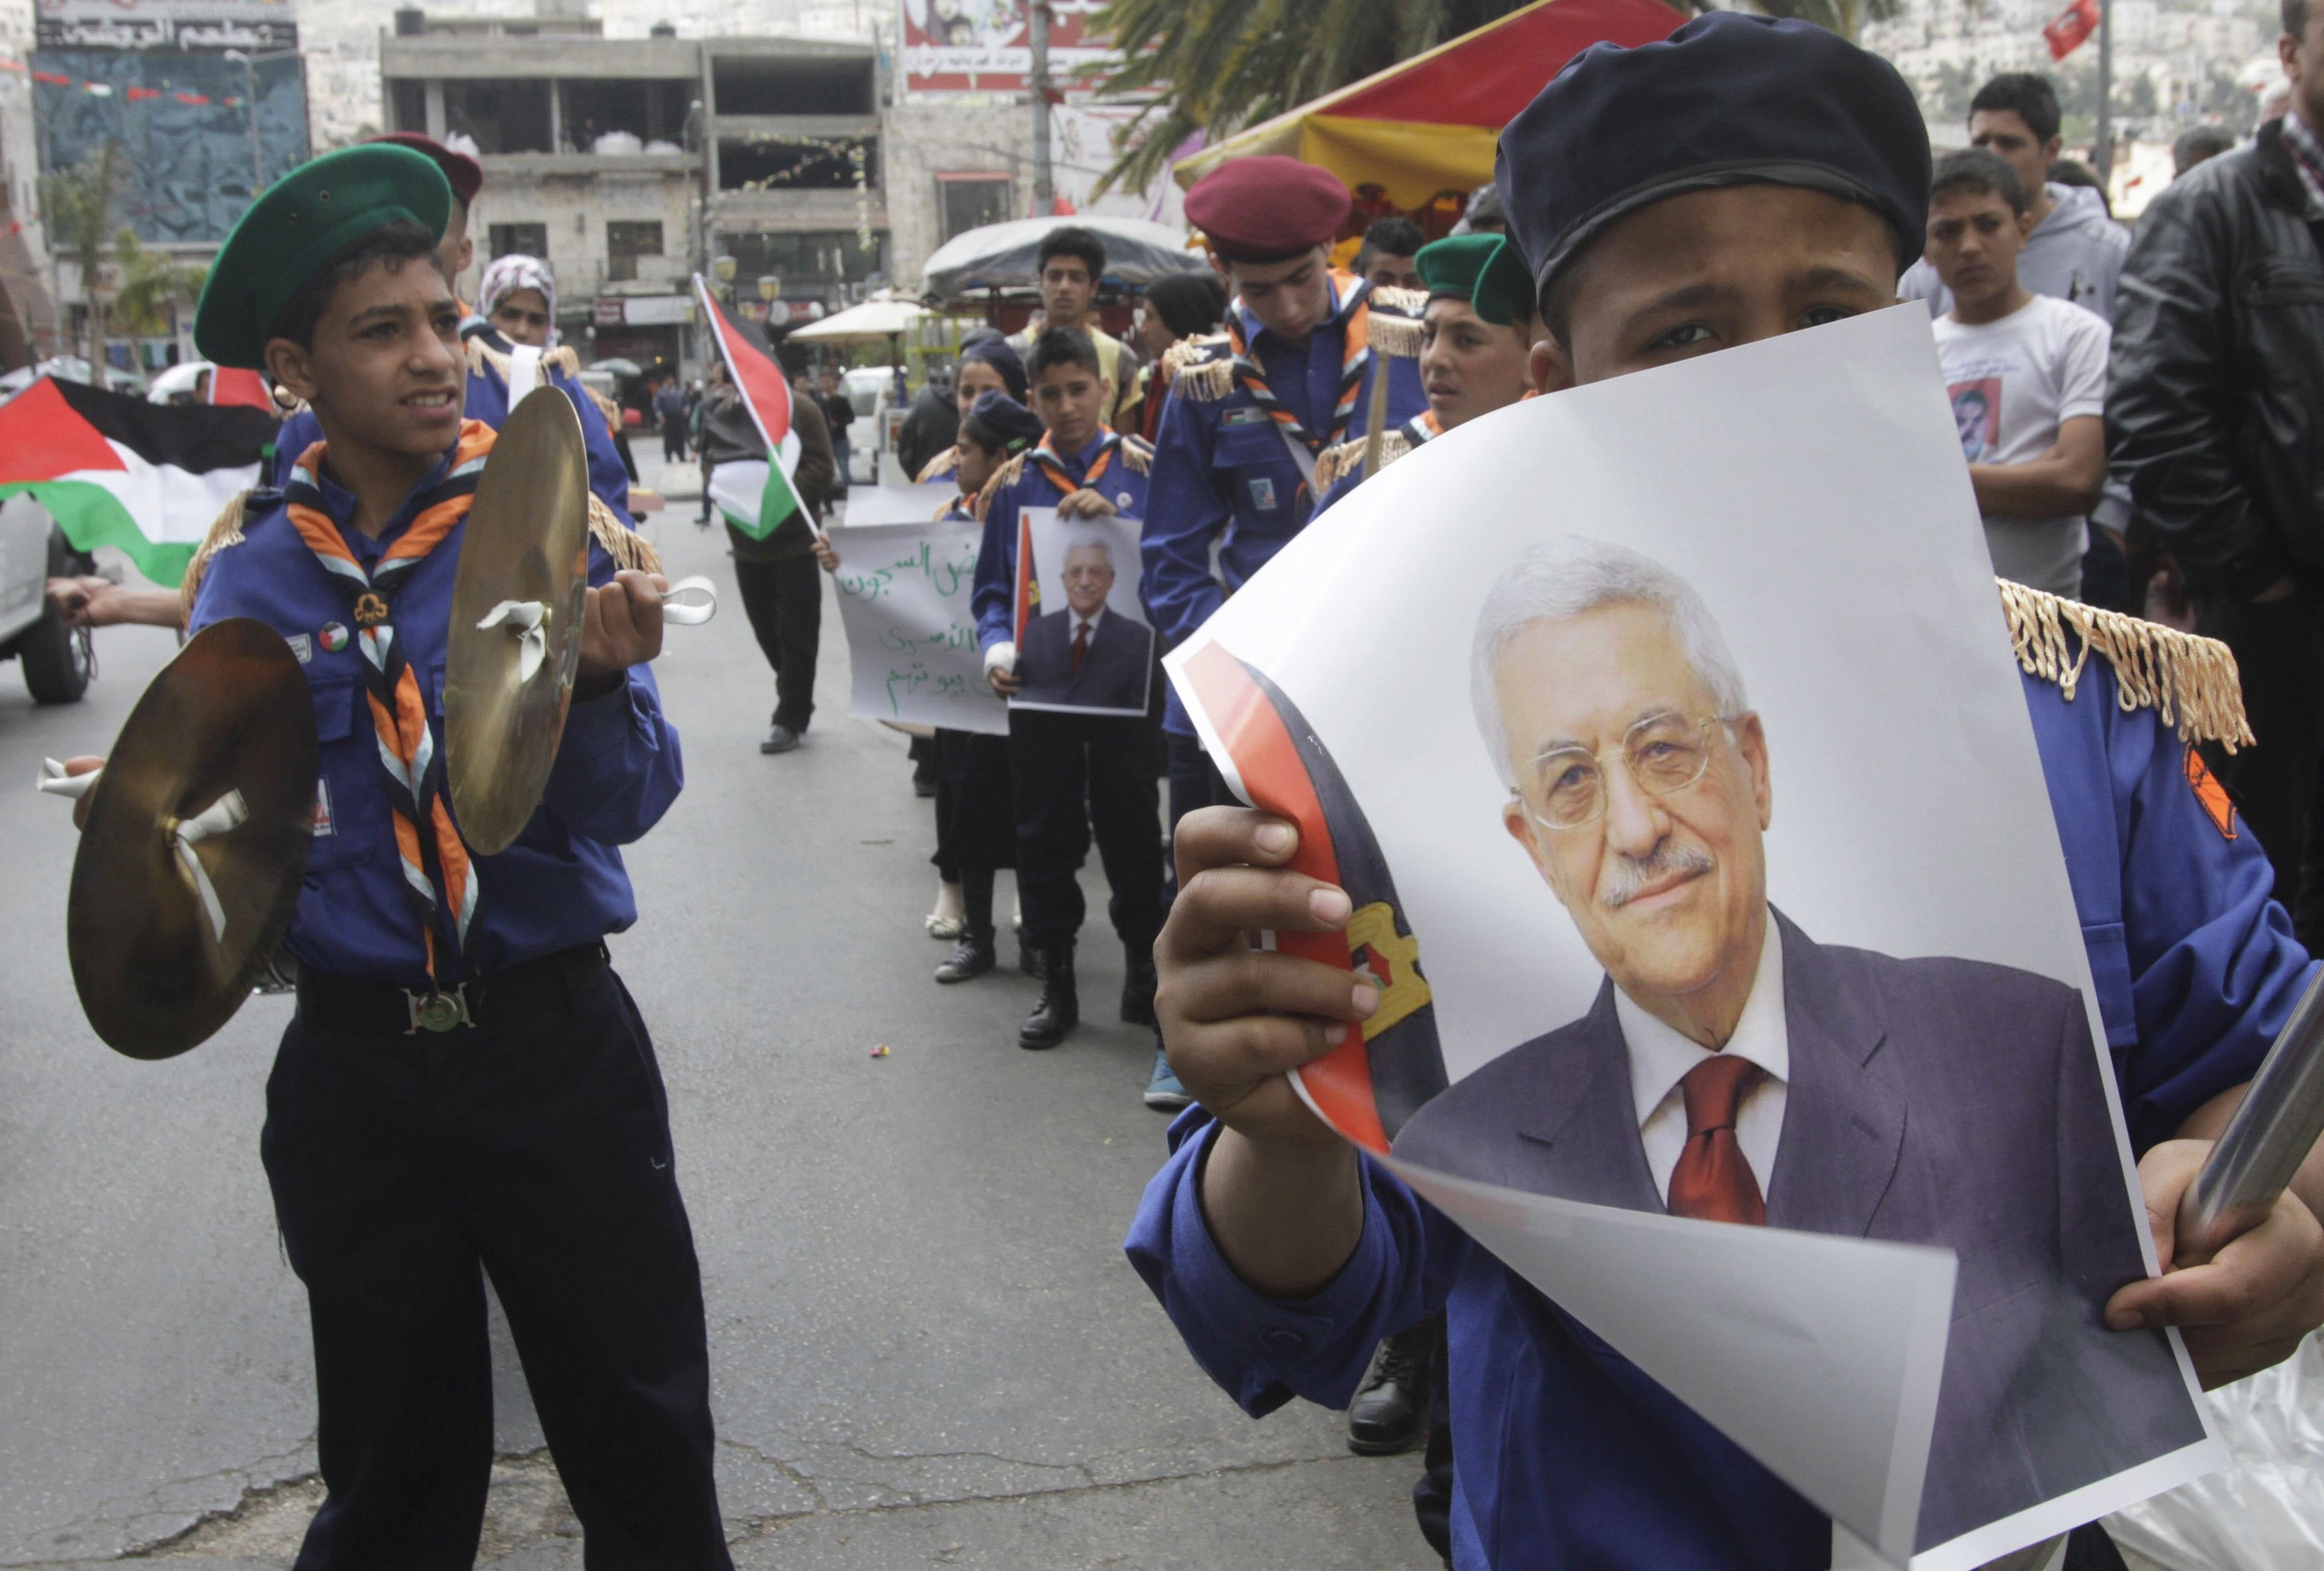 Scouts hold posters of Palestinian President Mahmoud Abbas during a Fatah rally in the West Bank city of Nablus on April 2, 2014